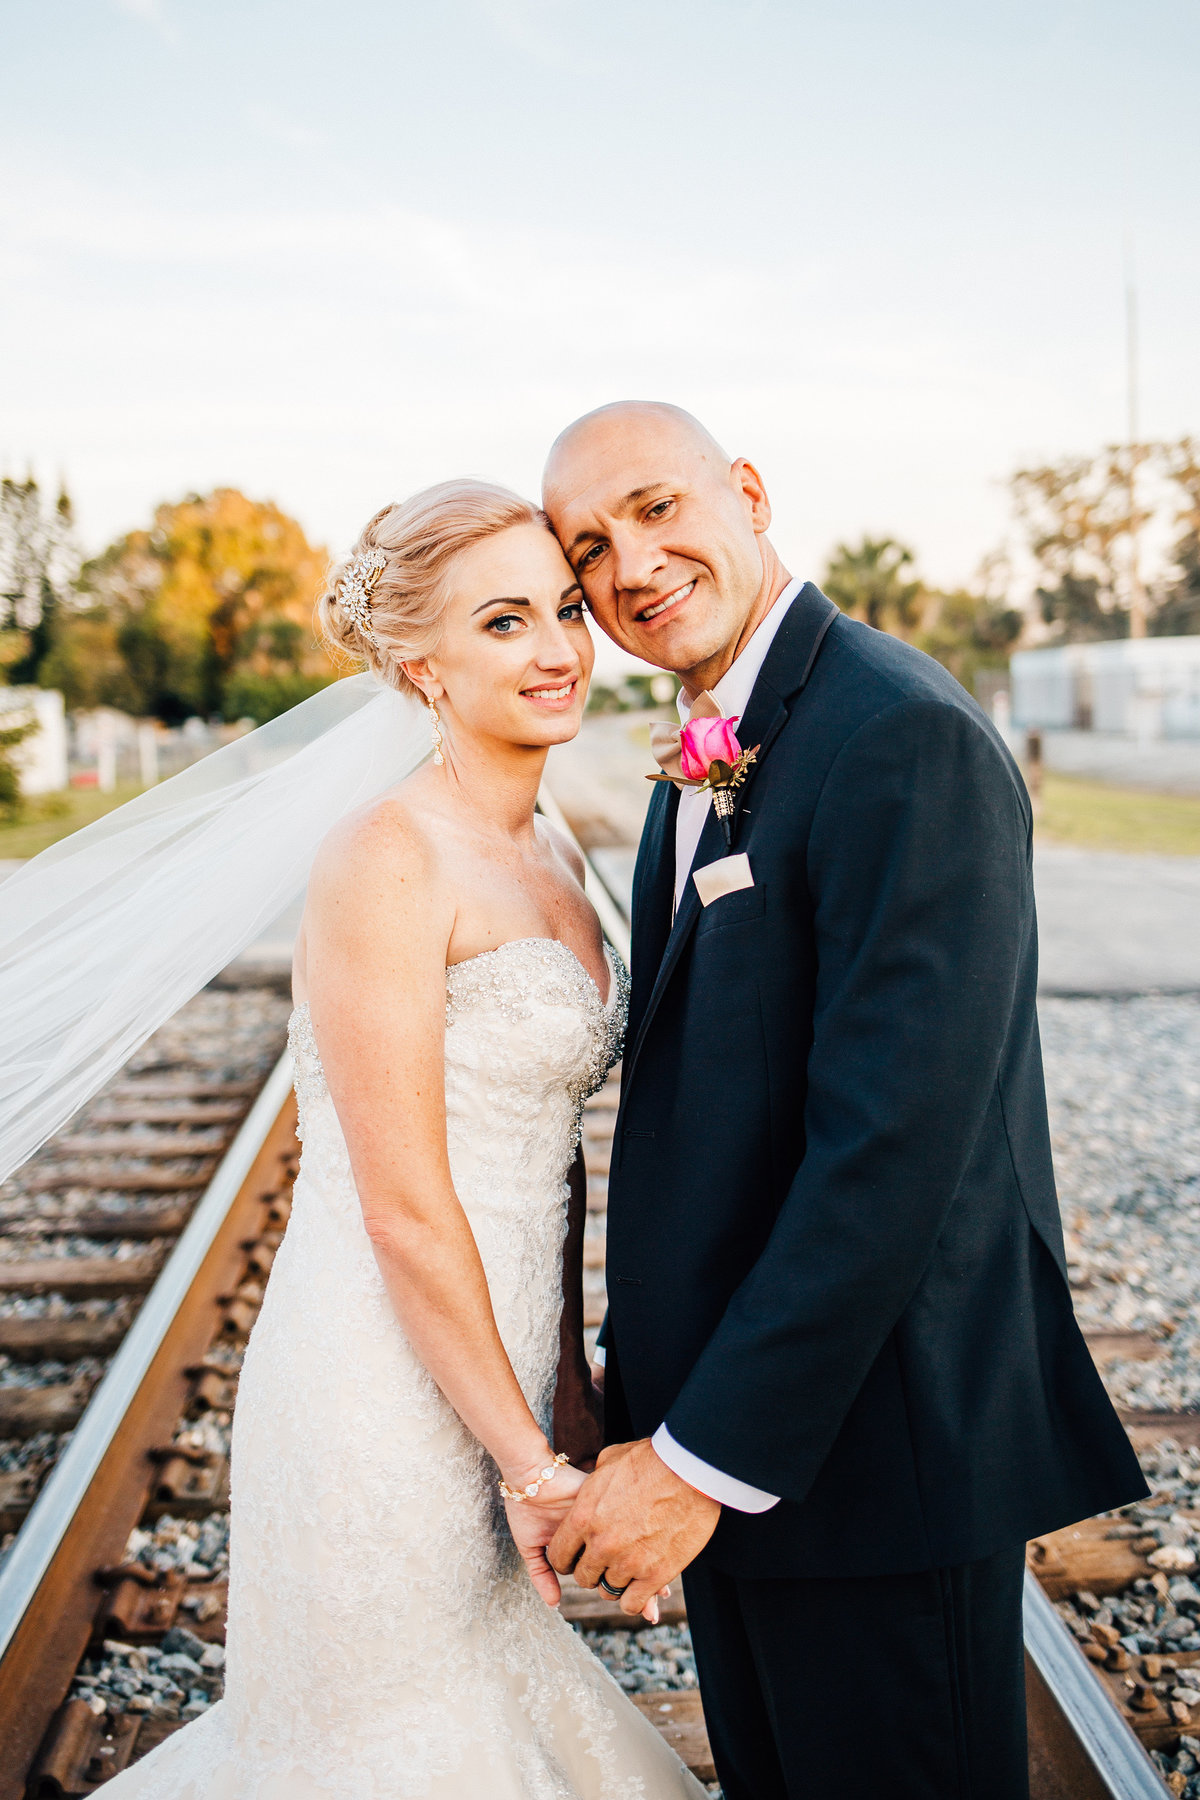 Kimberly_Hoyle_Photography_Milam_The_Back_Center_Melbourne_Wedding-68